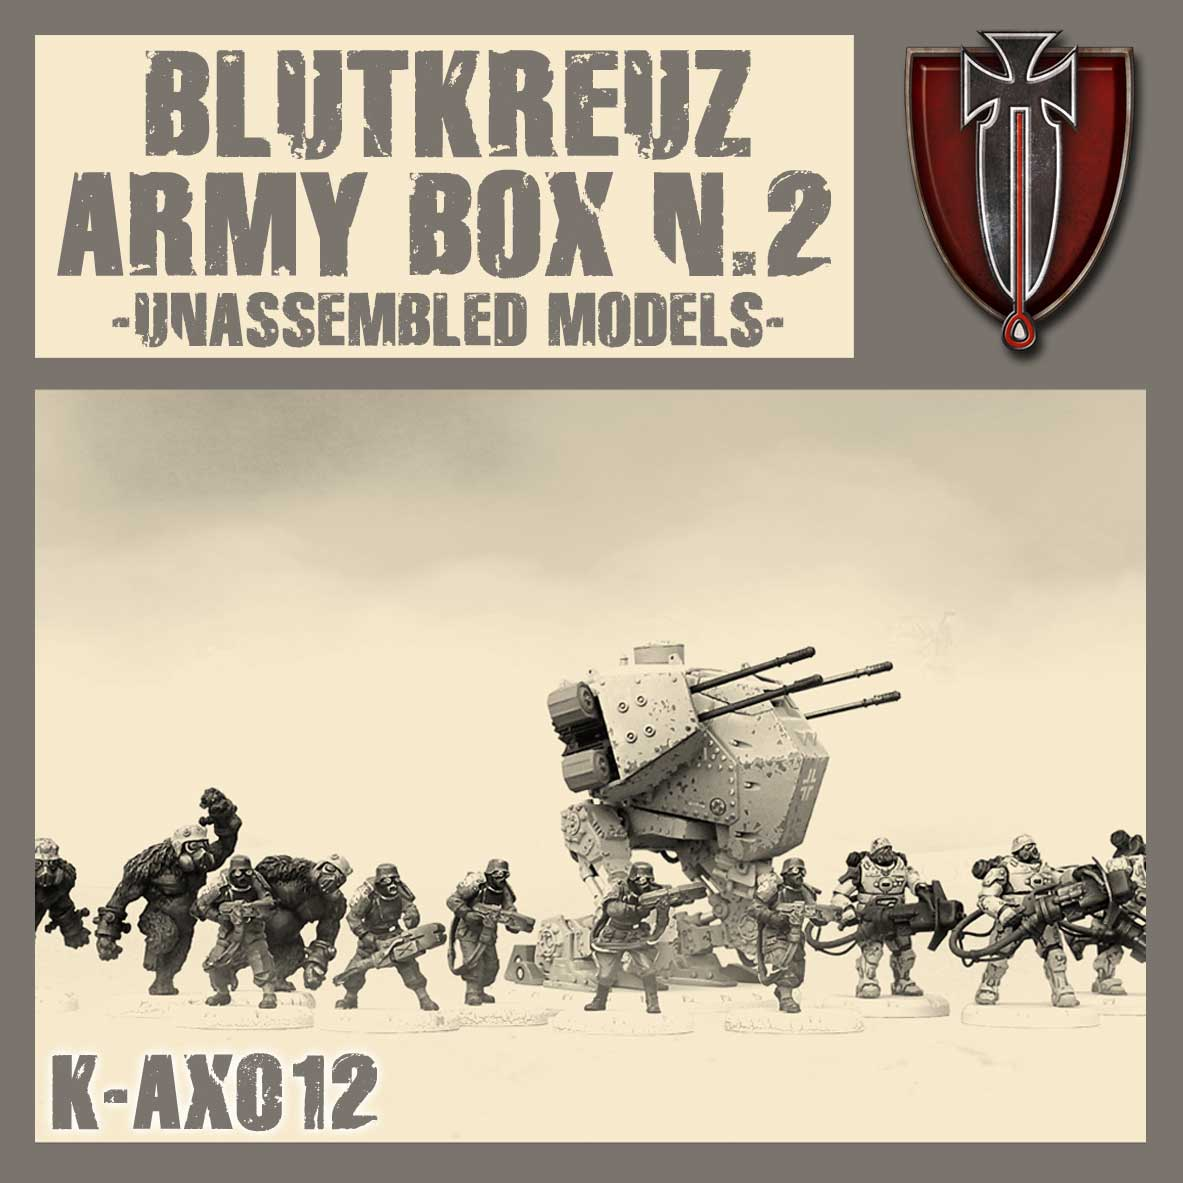 Blutkreuz Army Box II Kit